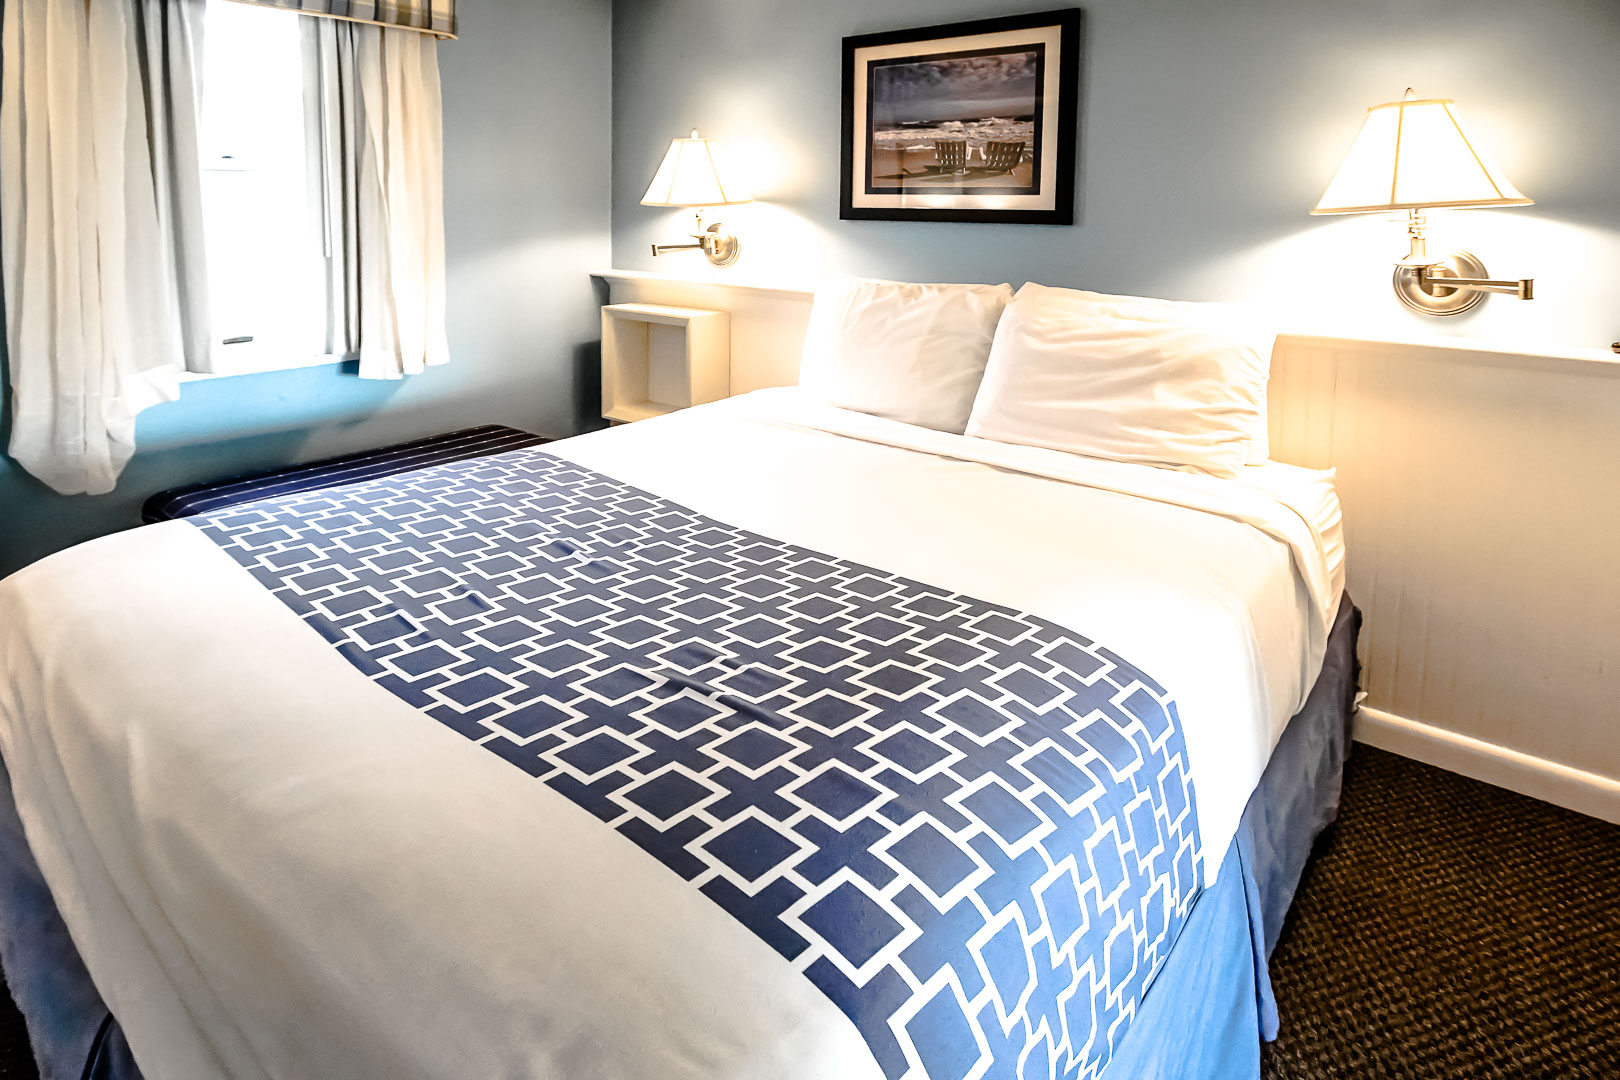 A crisp and clean master bedroom with a king size bed at VRI's Seawinds II Resort in Massachusetts.